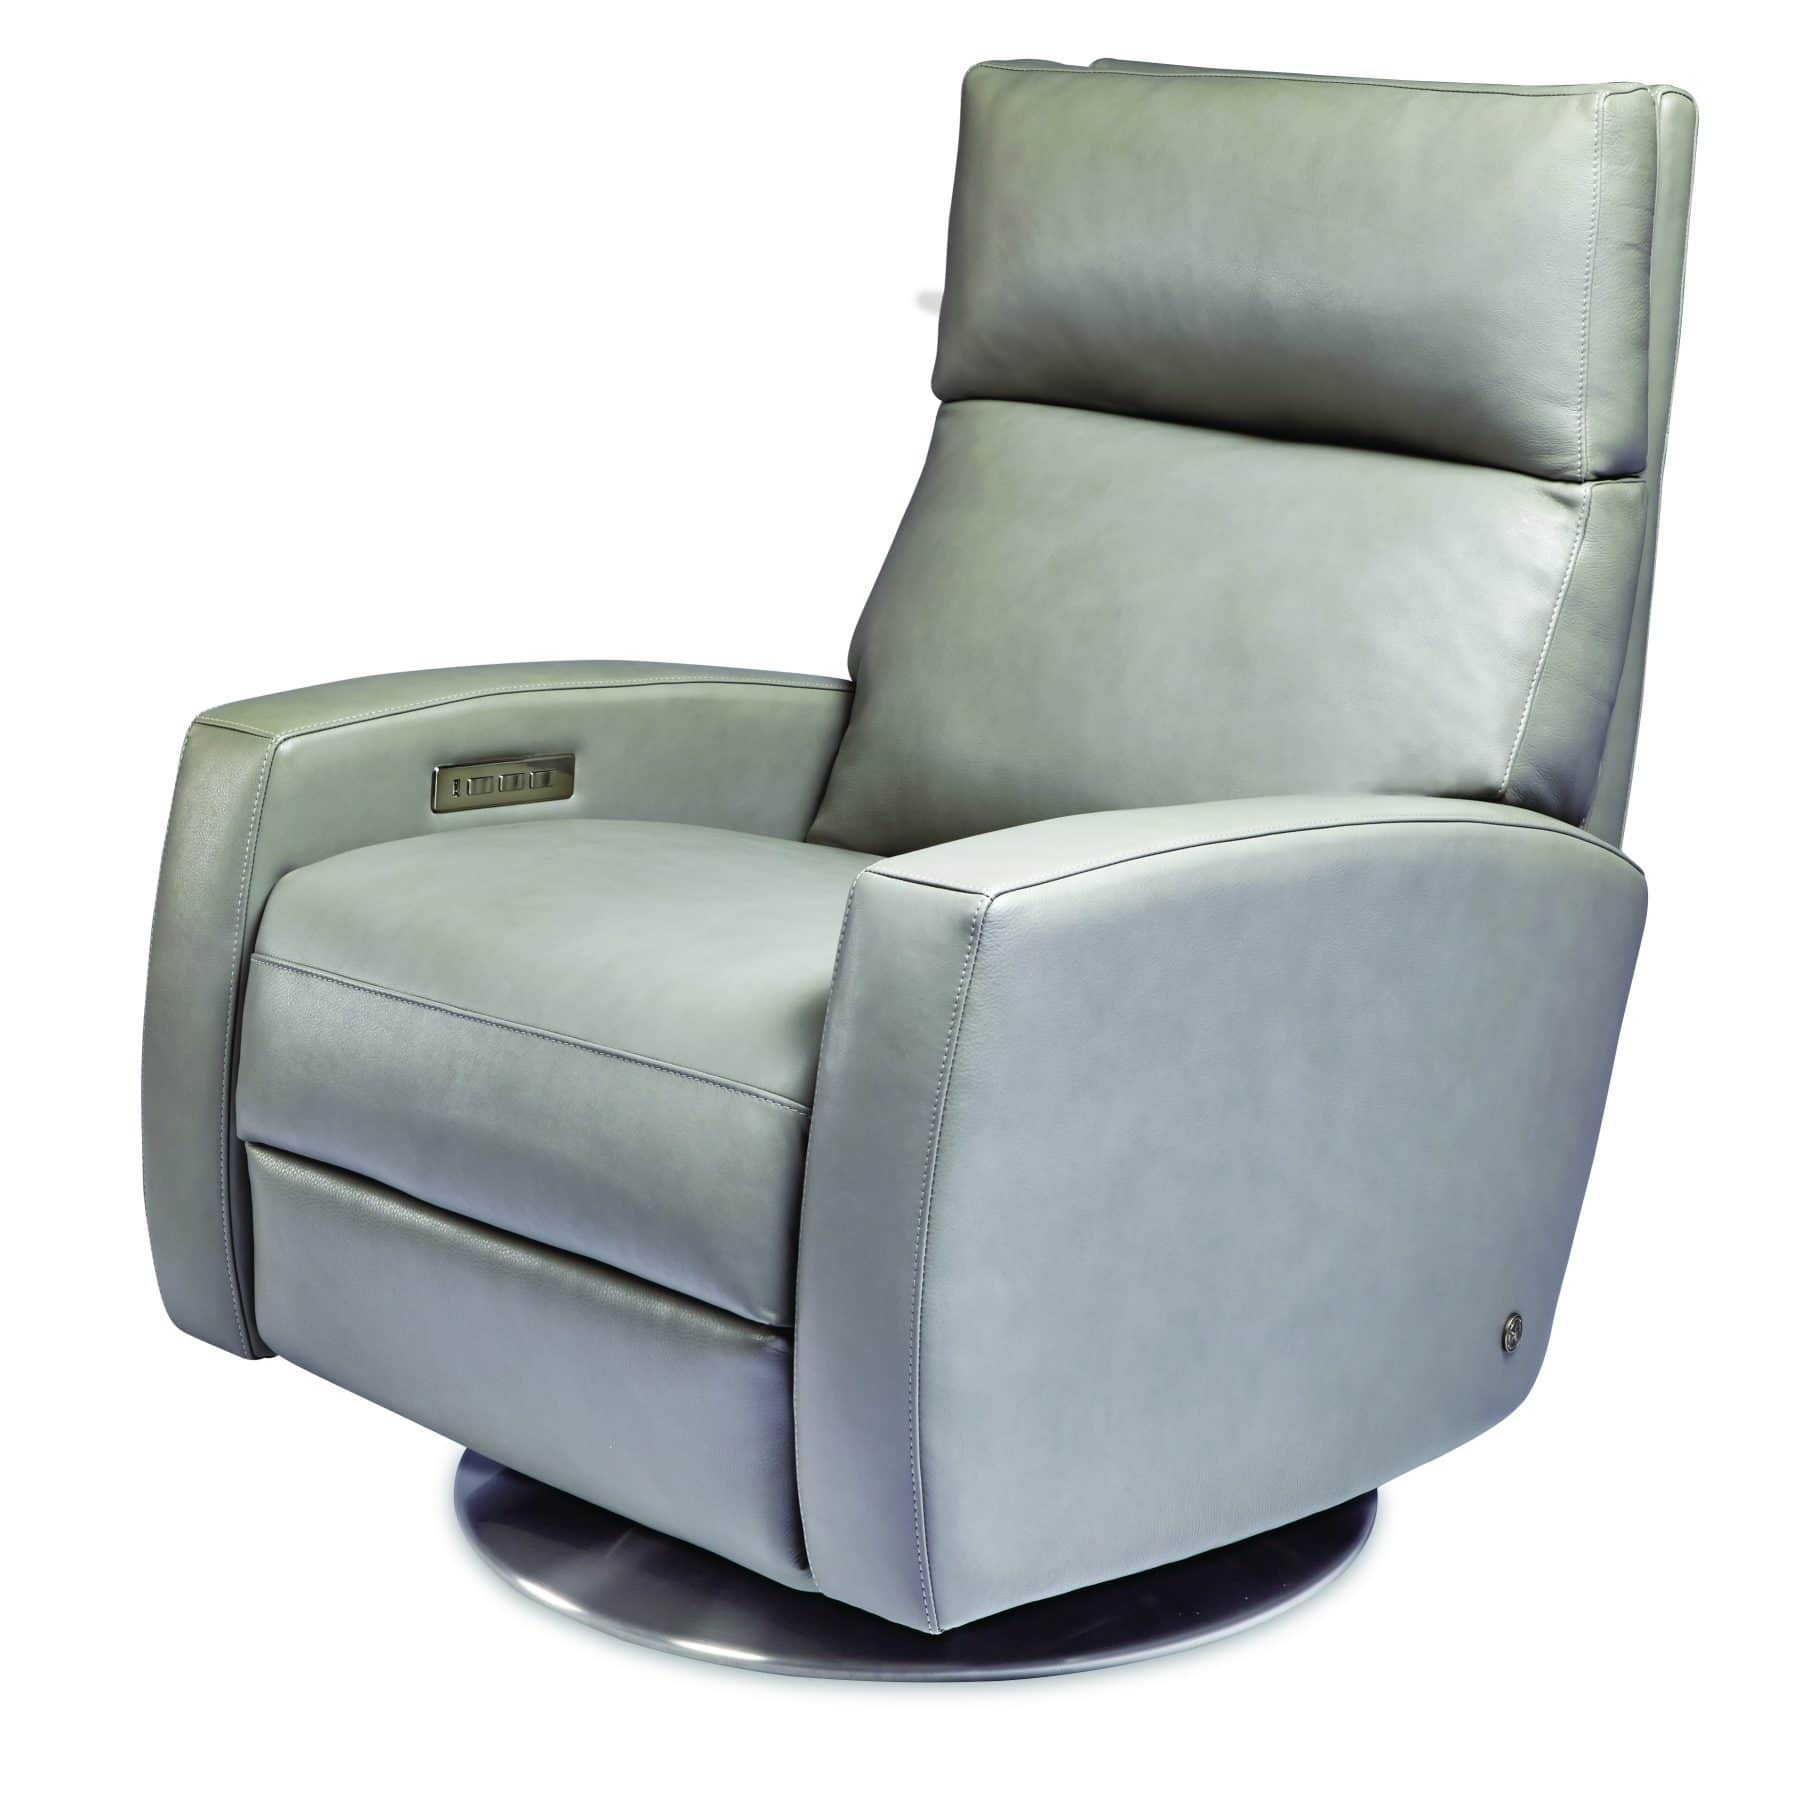 Elliot Comfort Recliner By American Leather In Bali Capri